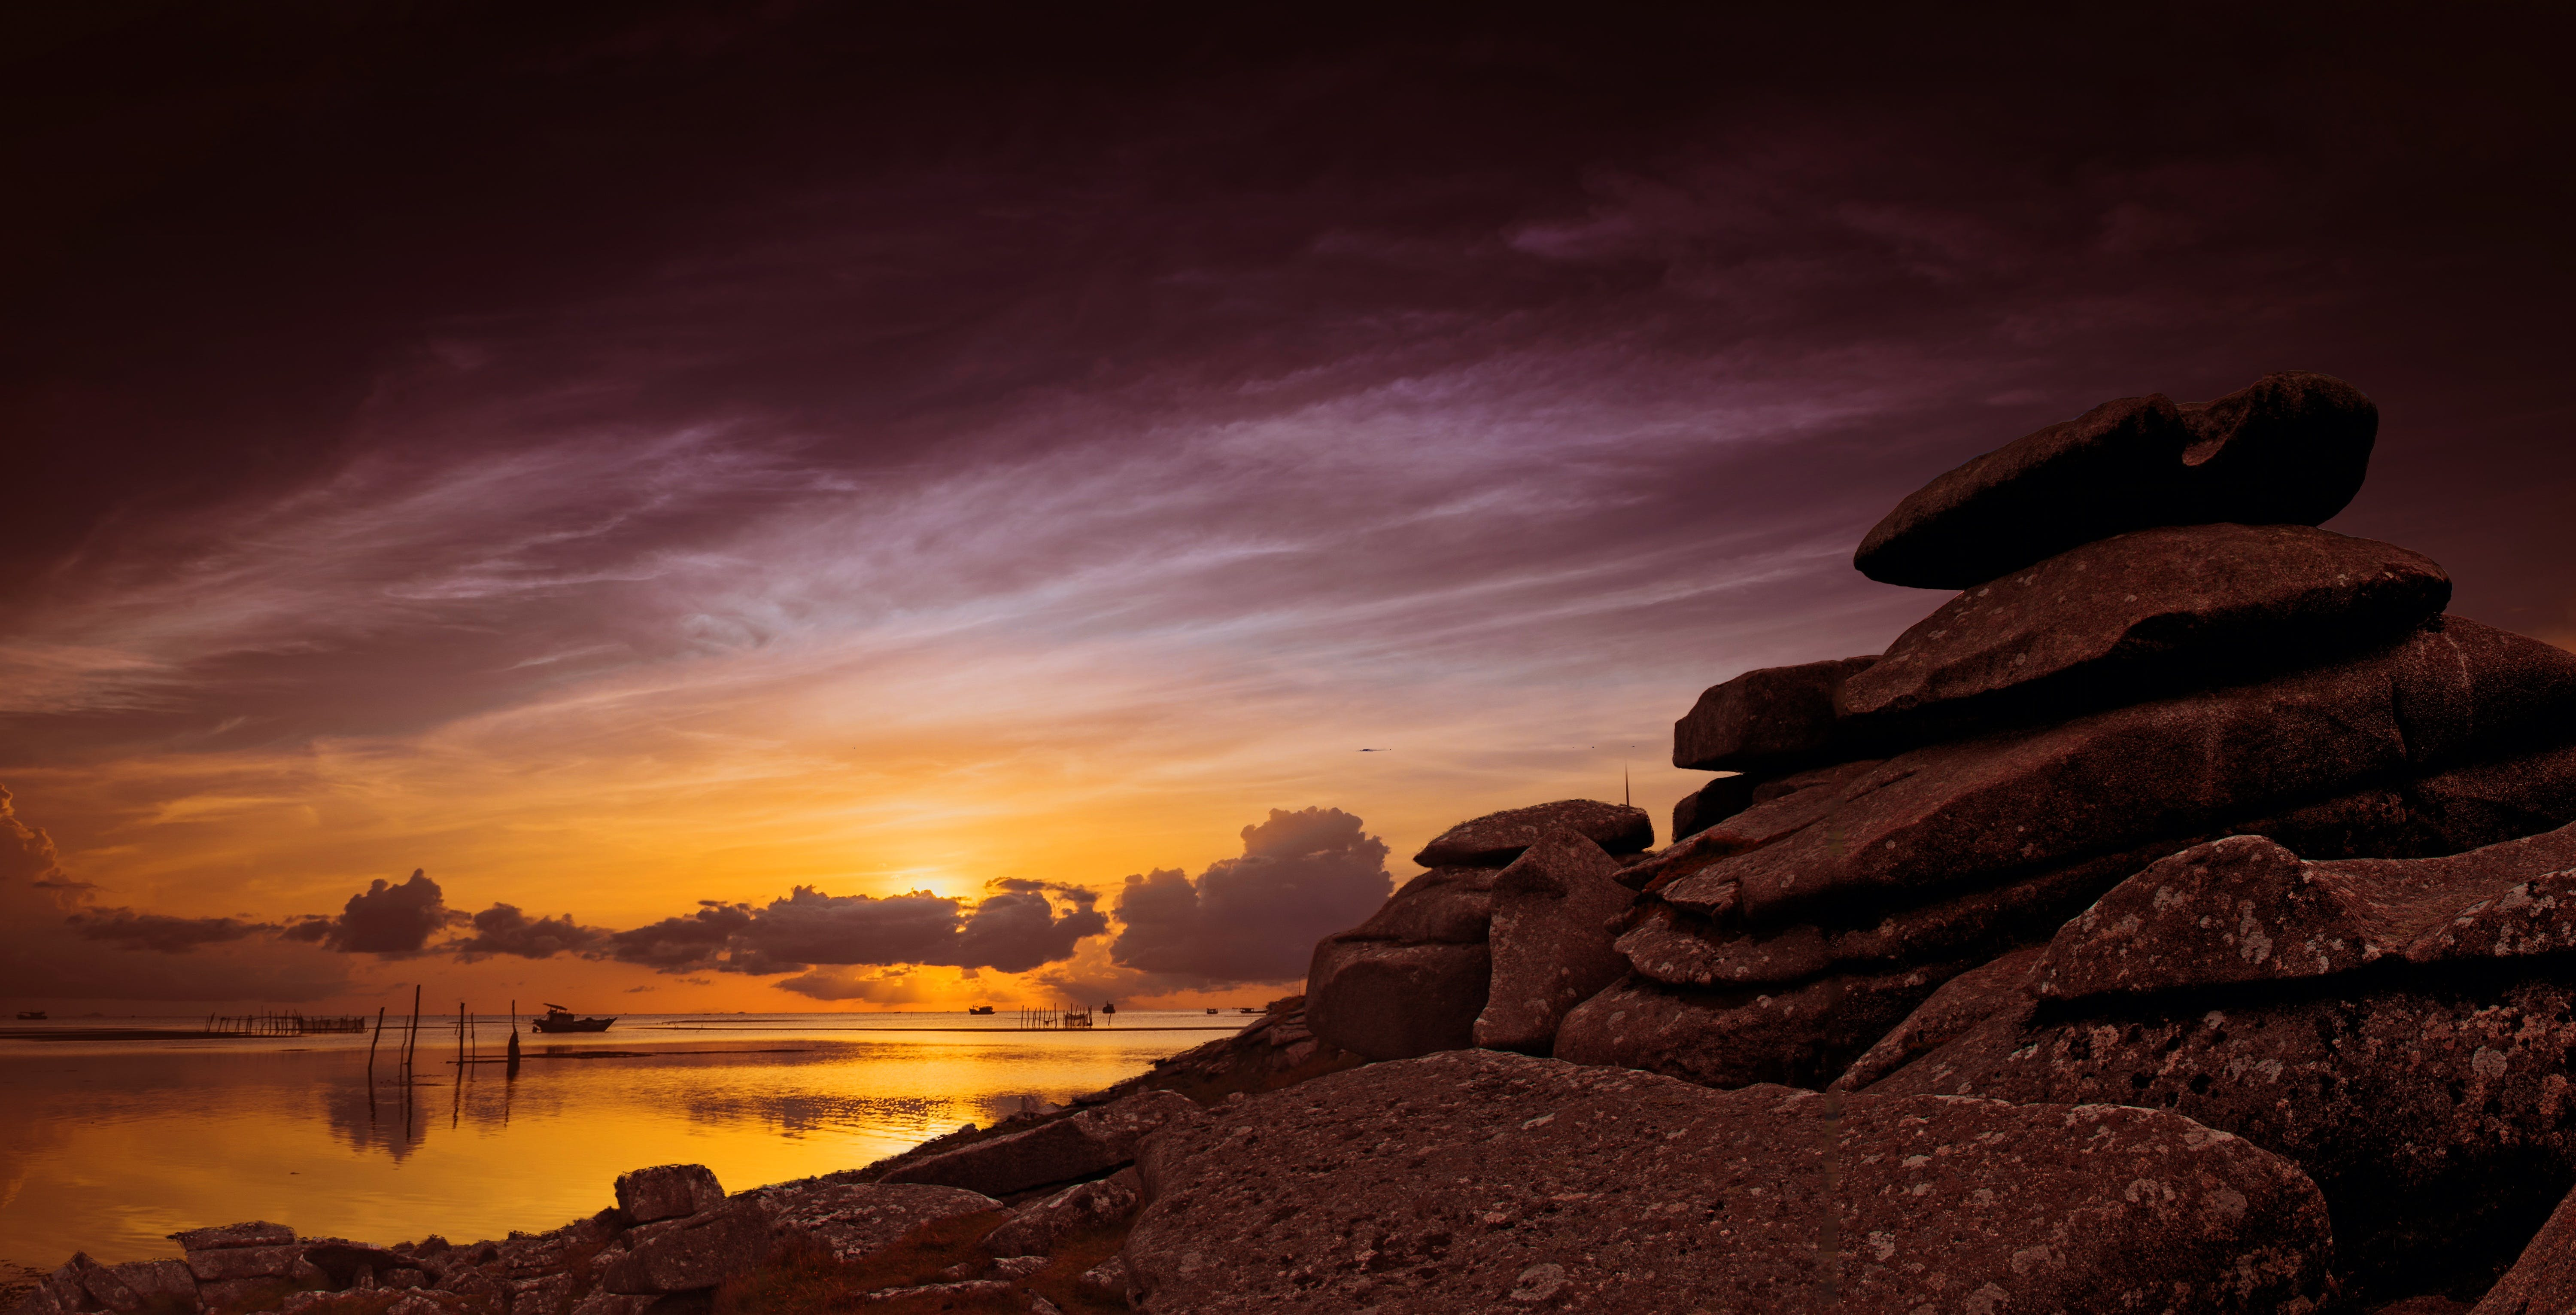 Landscape of Rocks on Sunset